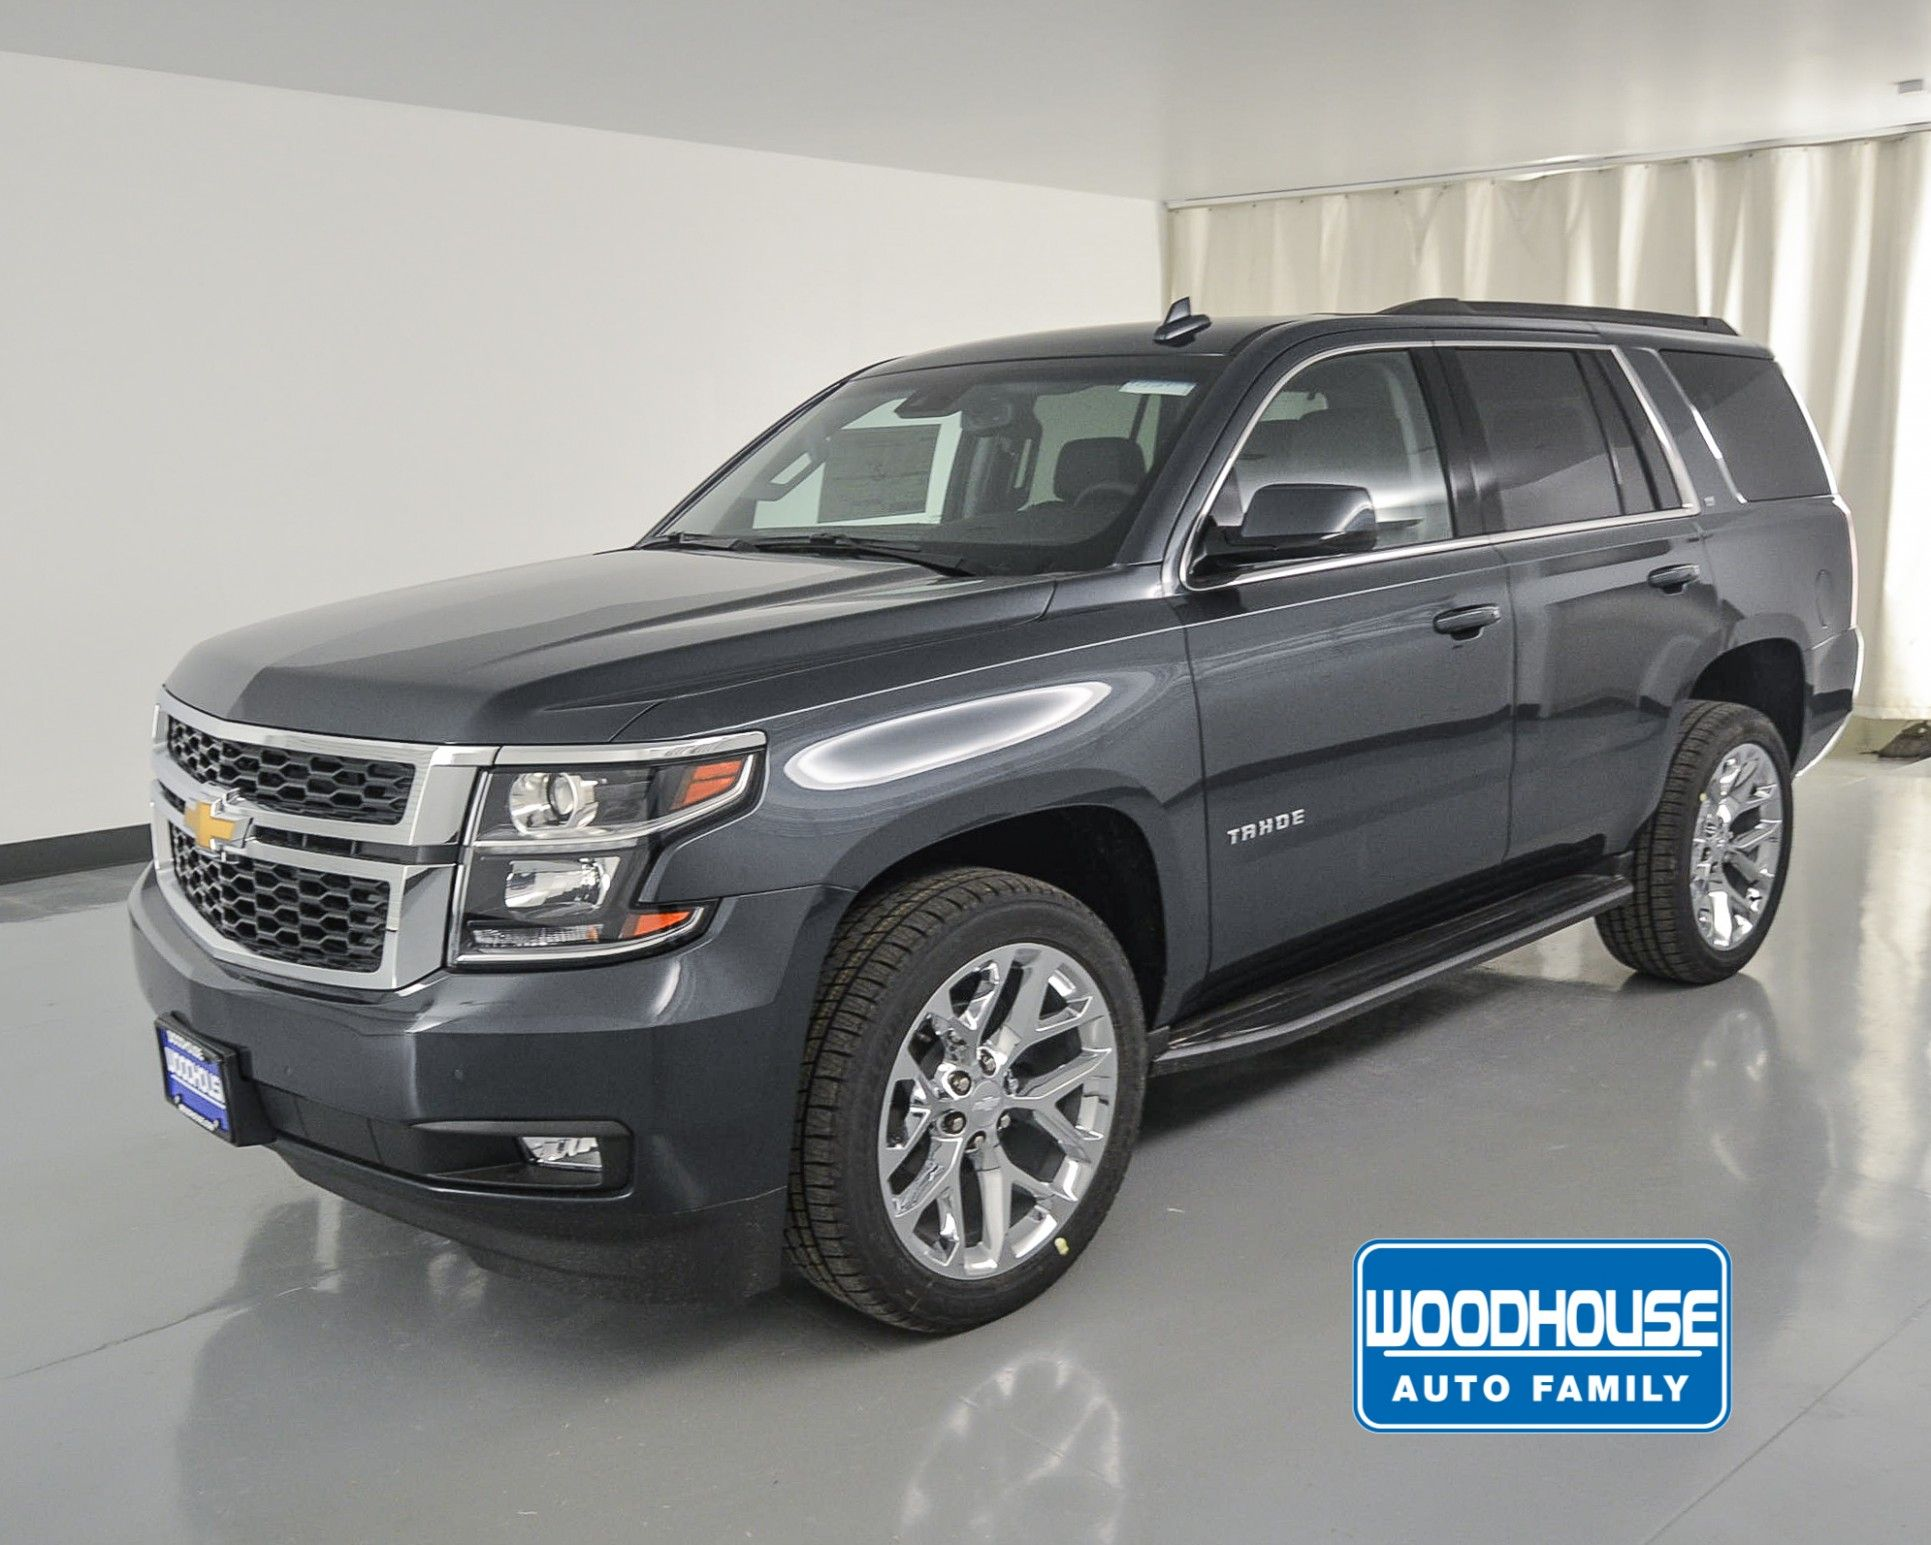 2020 Chevy Tahoe Chevy Tahoe Chevy Camaro Coupe